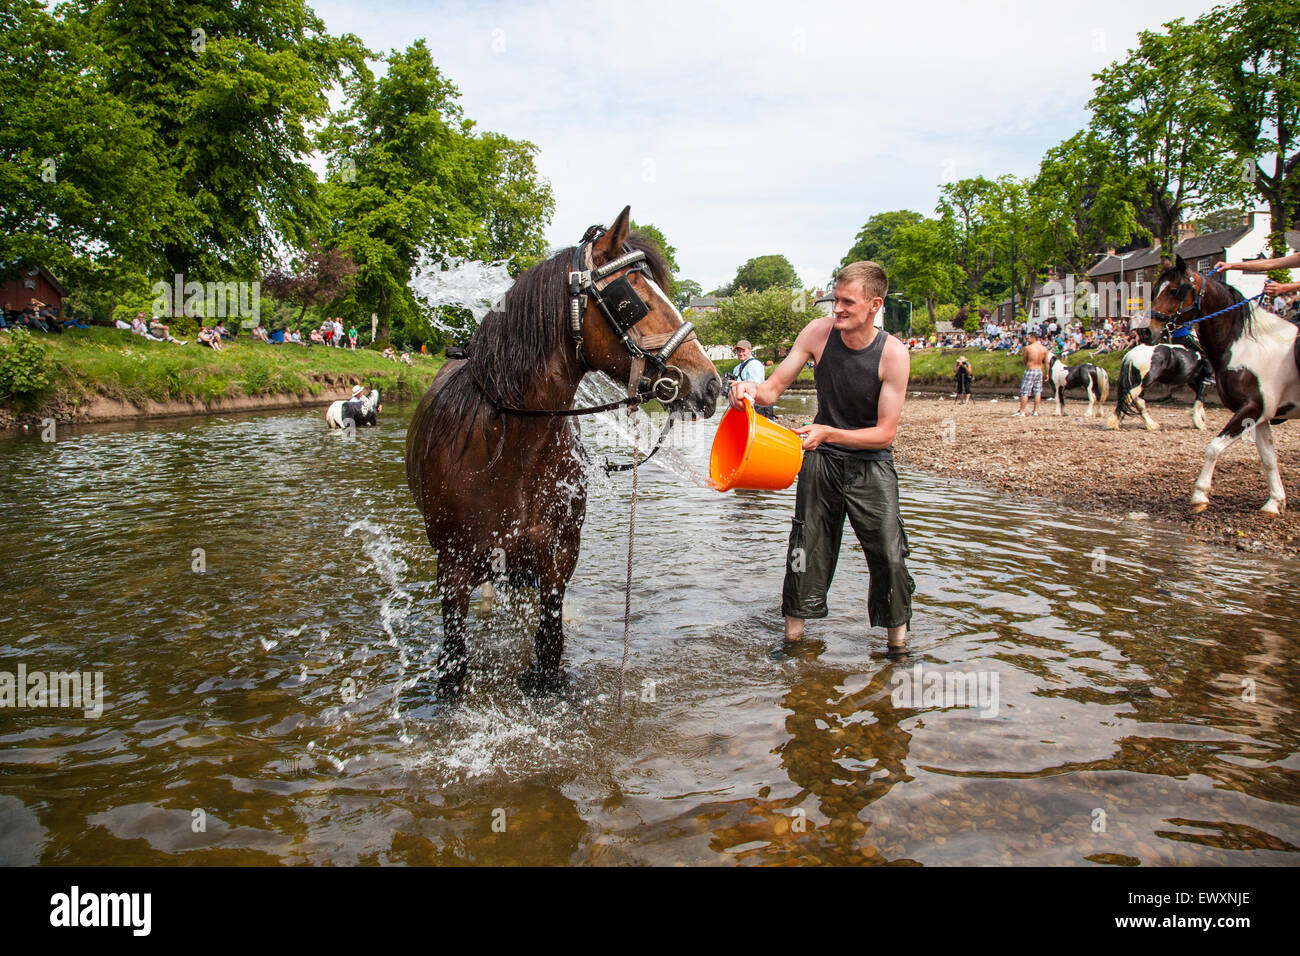 Washing a horse in the river during Appleby Horse Fair - Stock Image